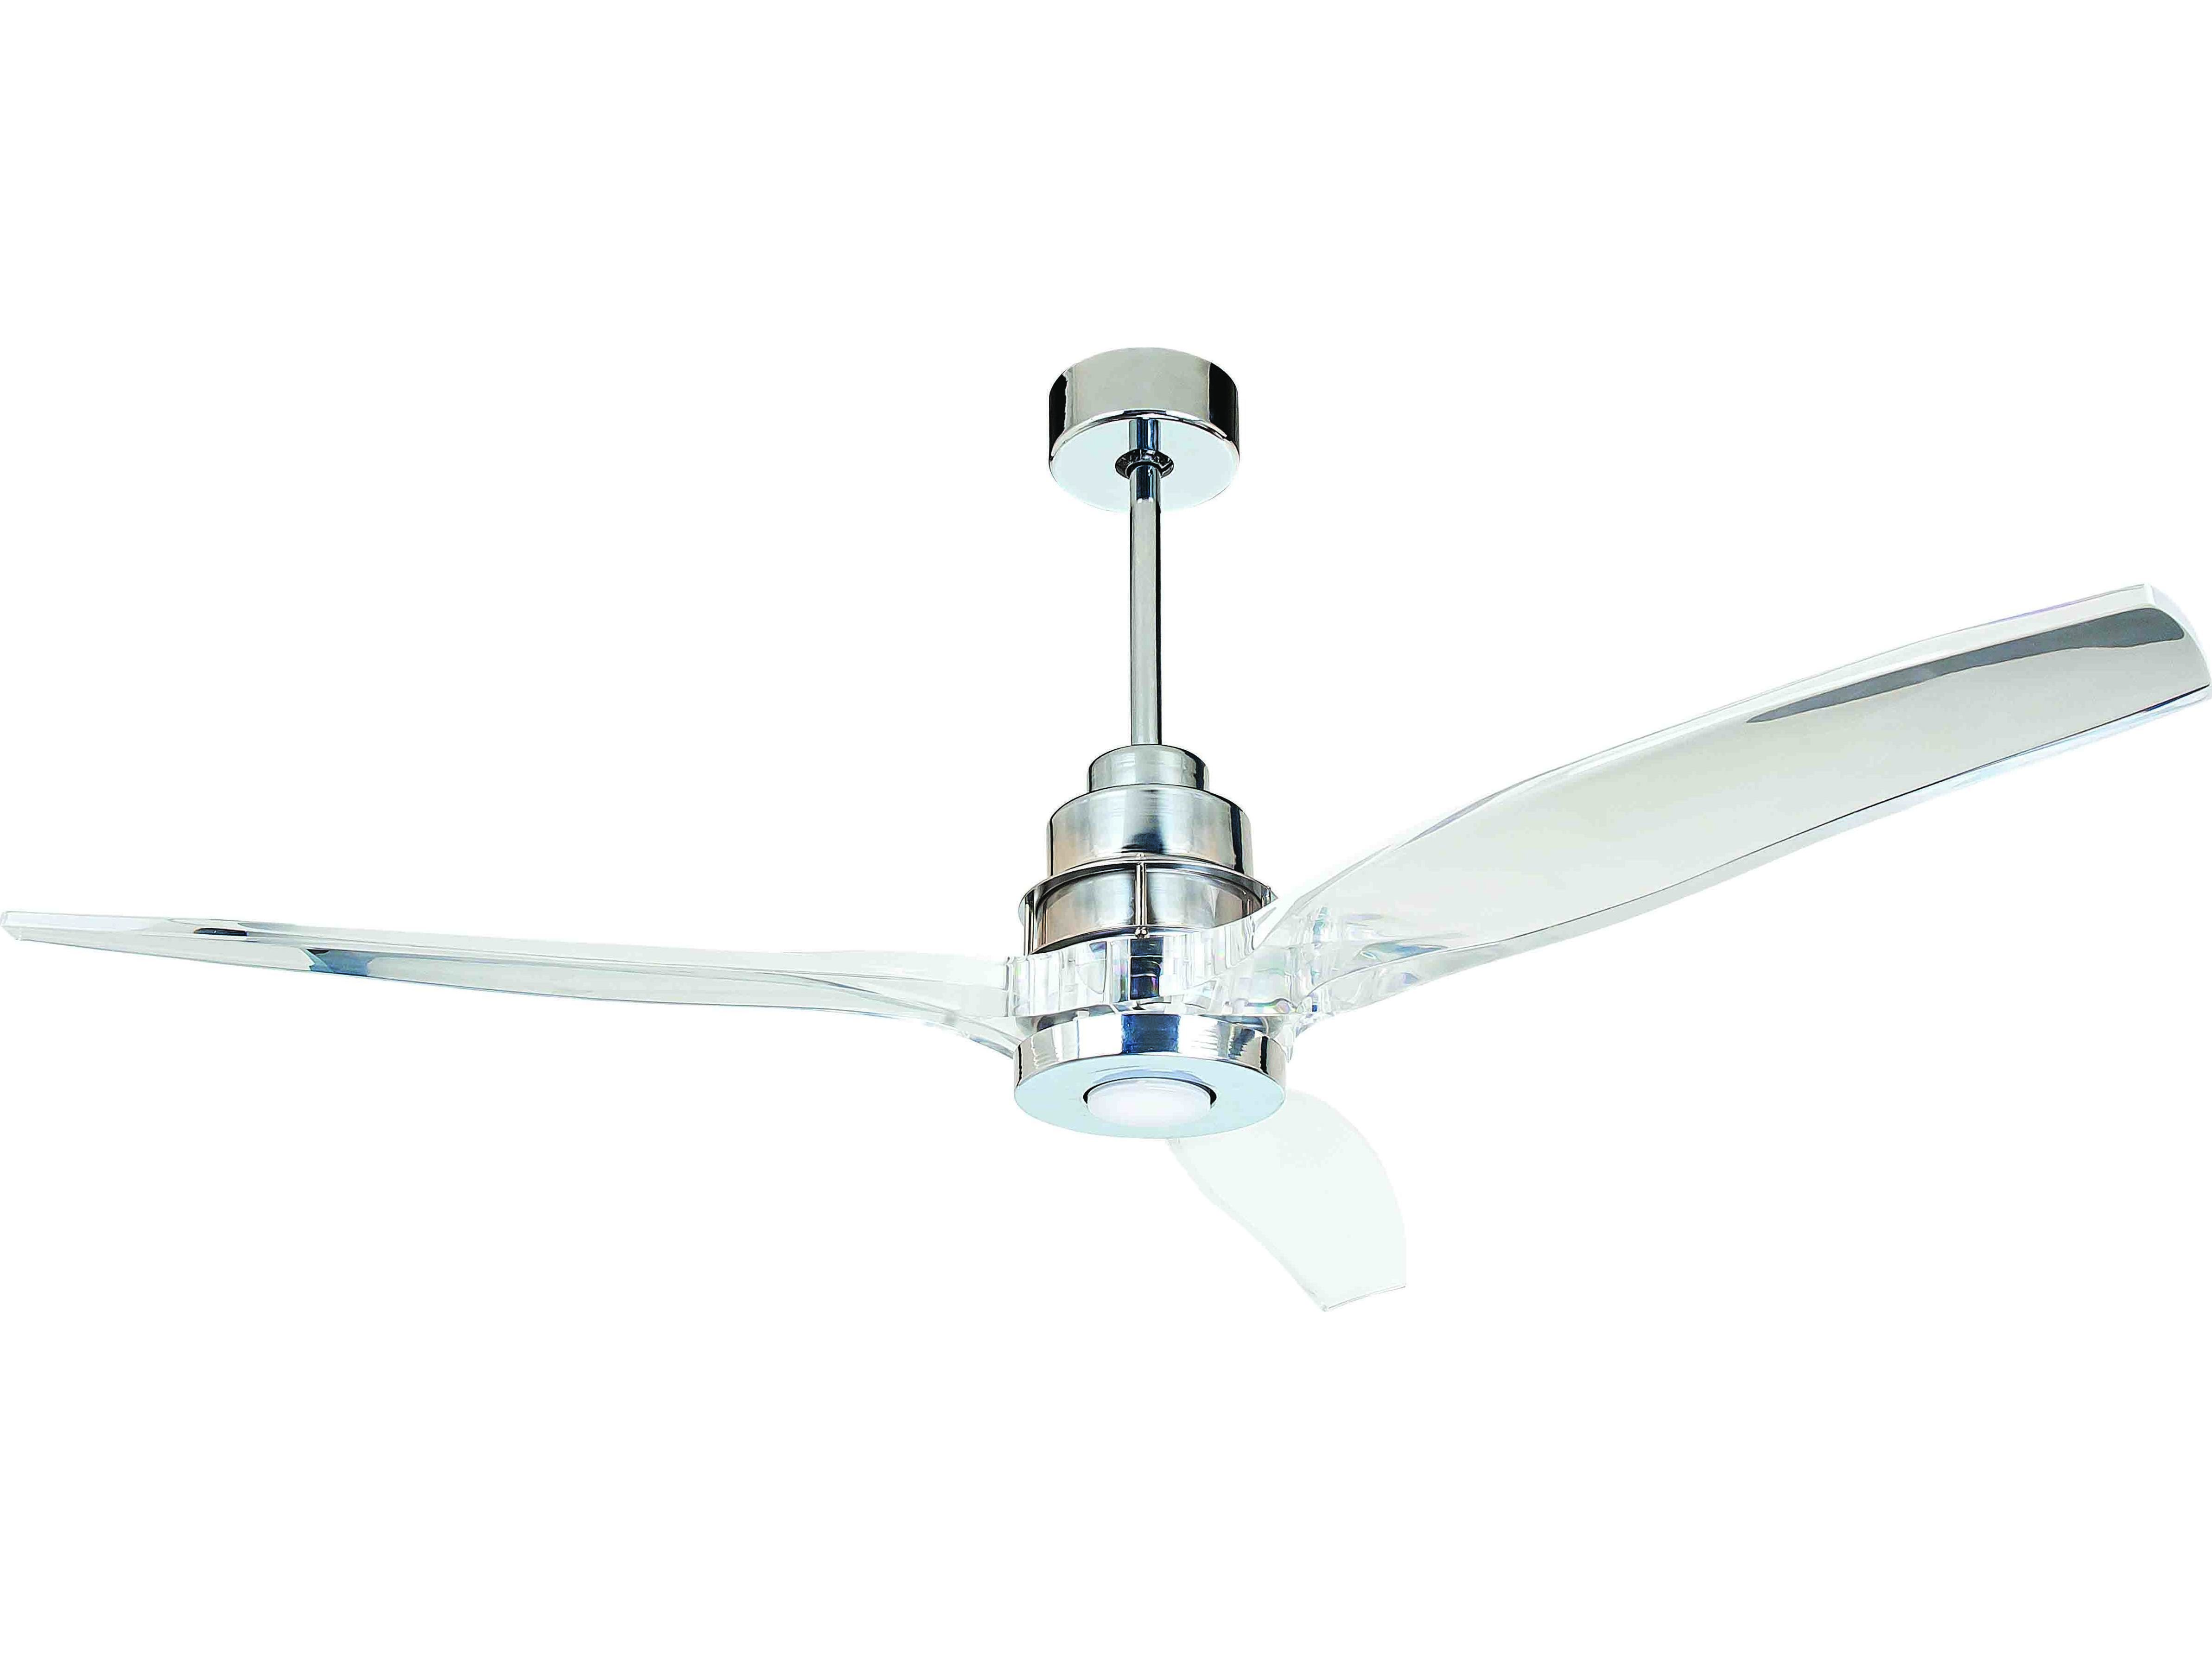 fan frost craftmade ceiling lighting capitol in glass oiled blade shown midoro cfm wg and item finish inch ceilings bronze white magnifying image